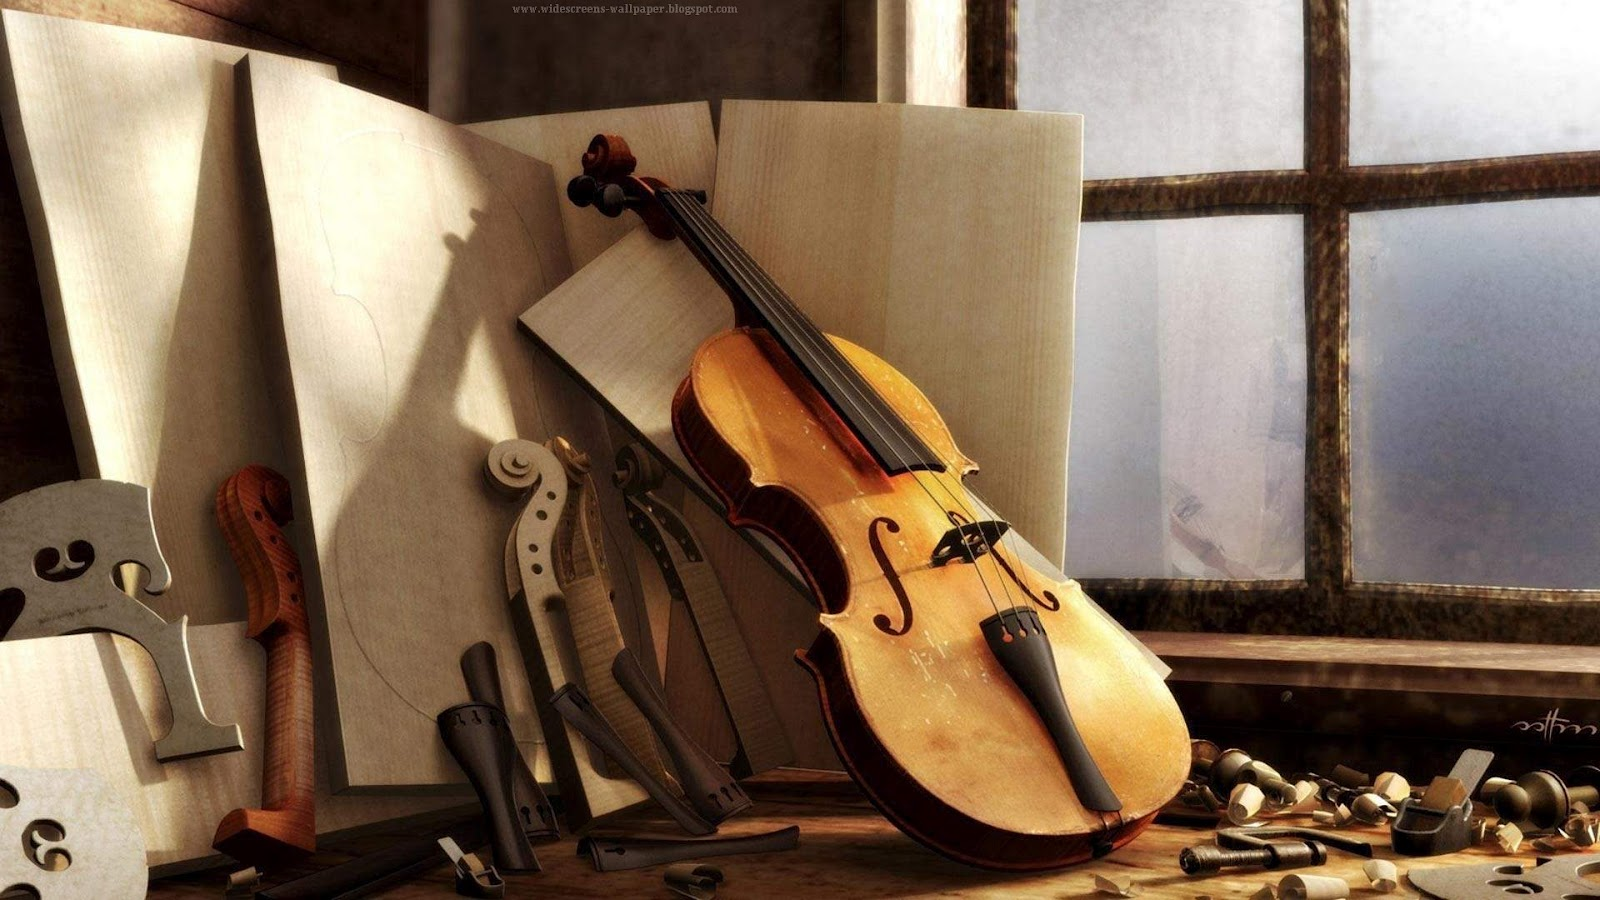 Making a great violin - Music Violins Wallpapers